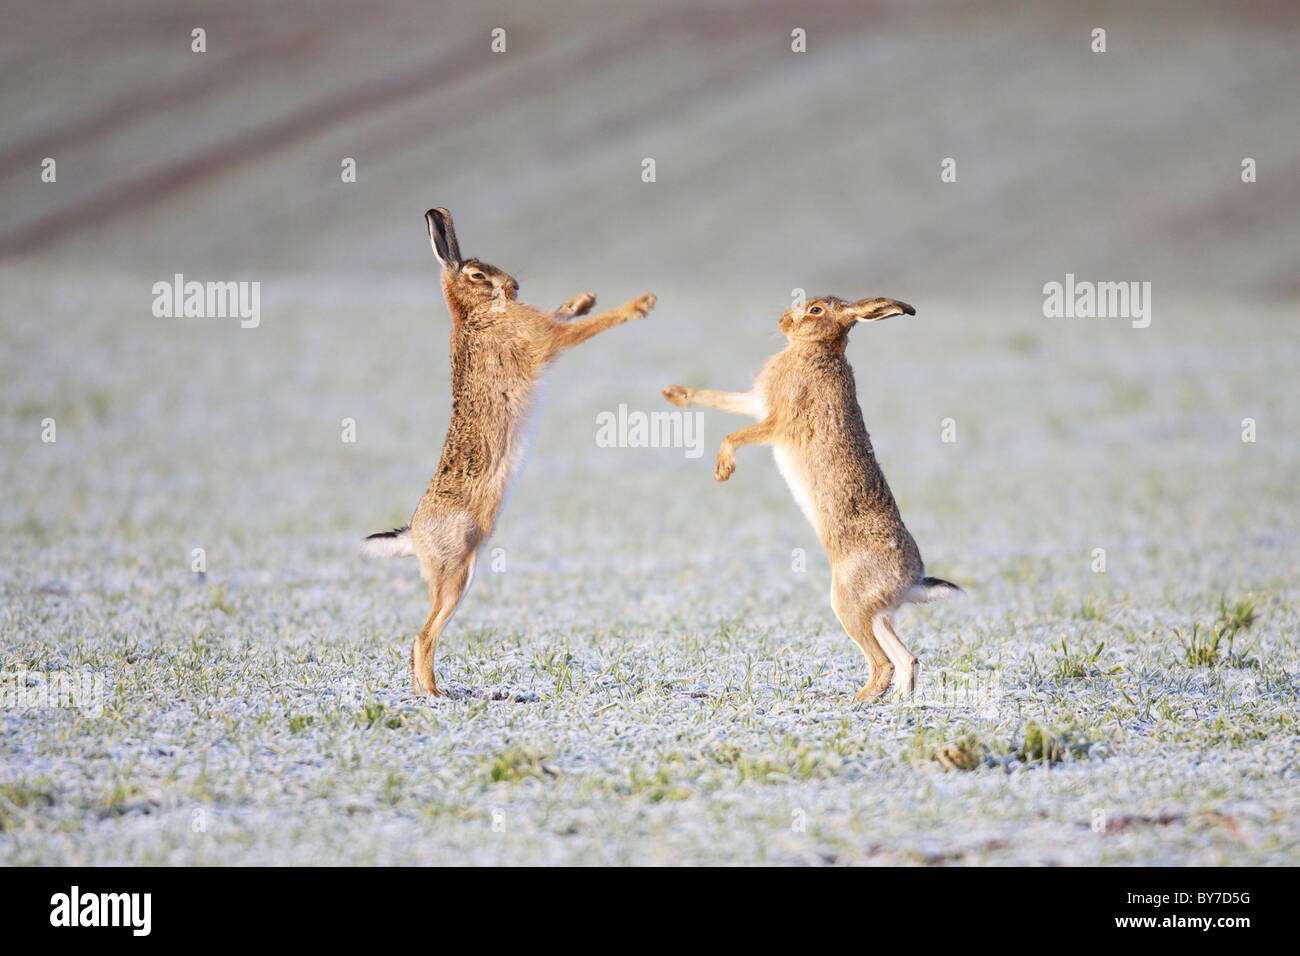 Brown Hares boxing - Stock Image